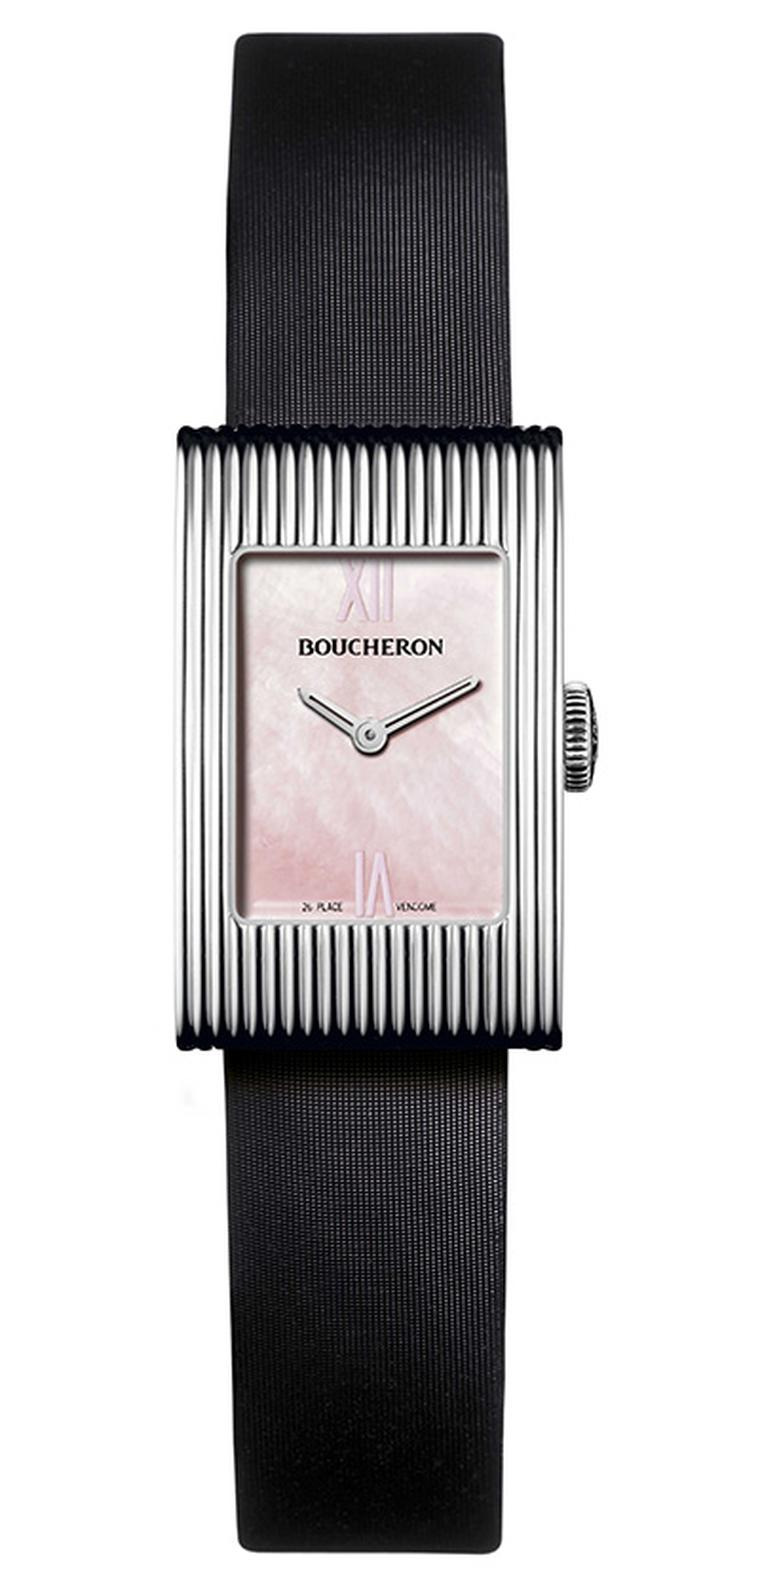 Boucheron Reflet on black satin strap